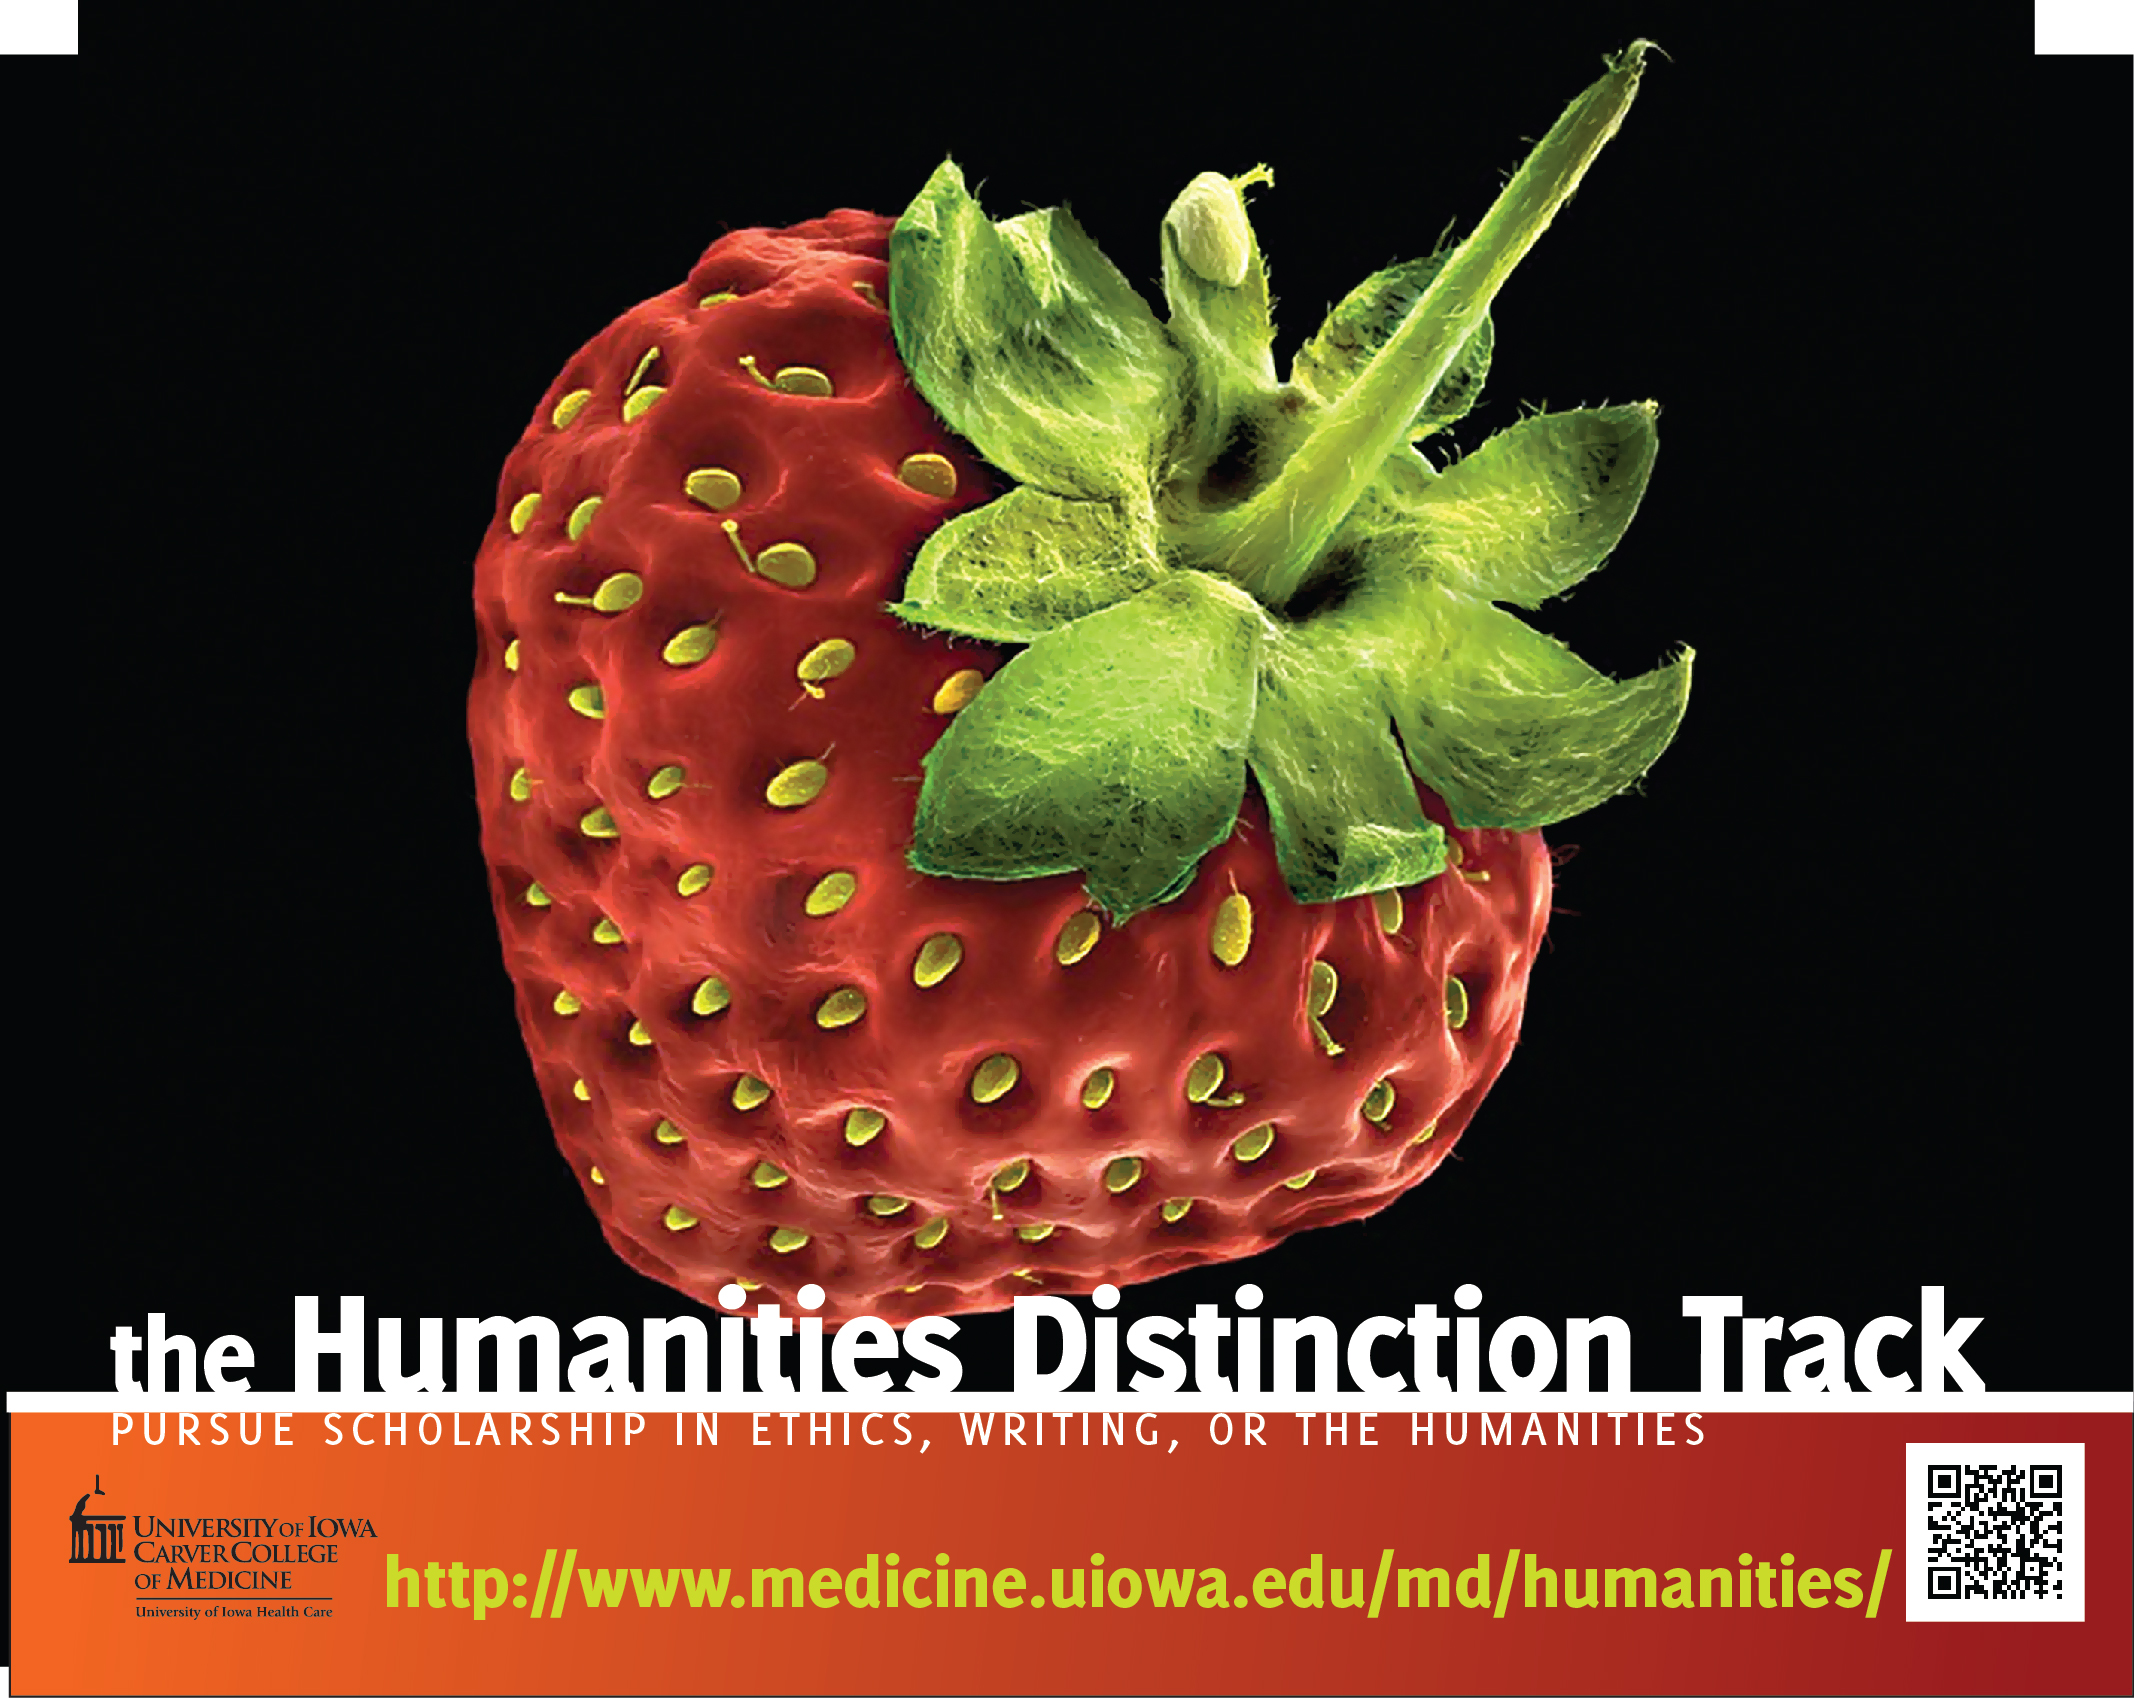 The Humanities Distinction Track